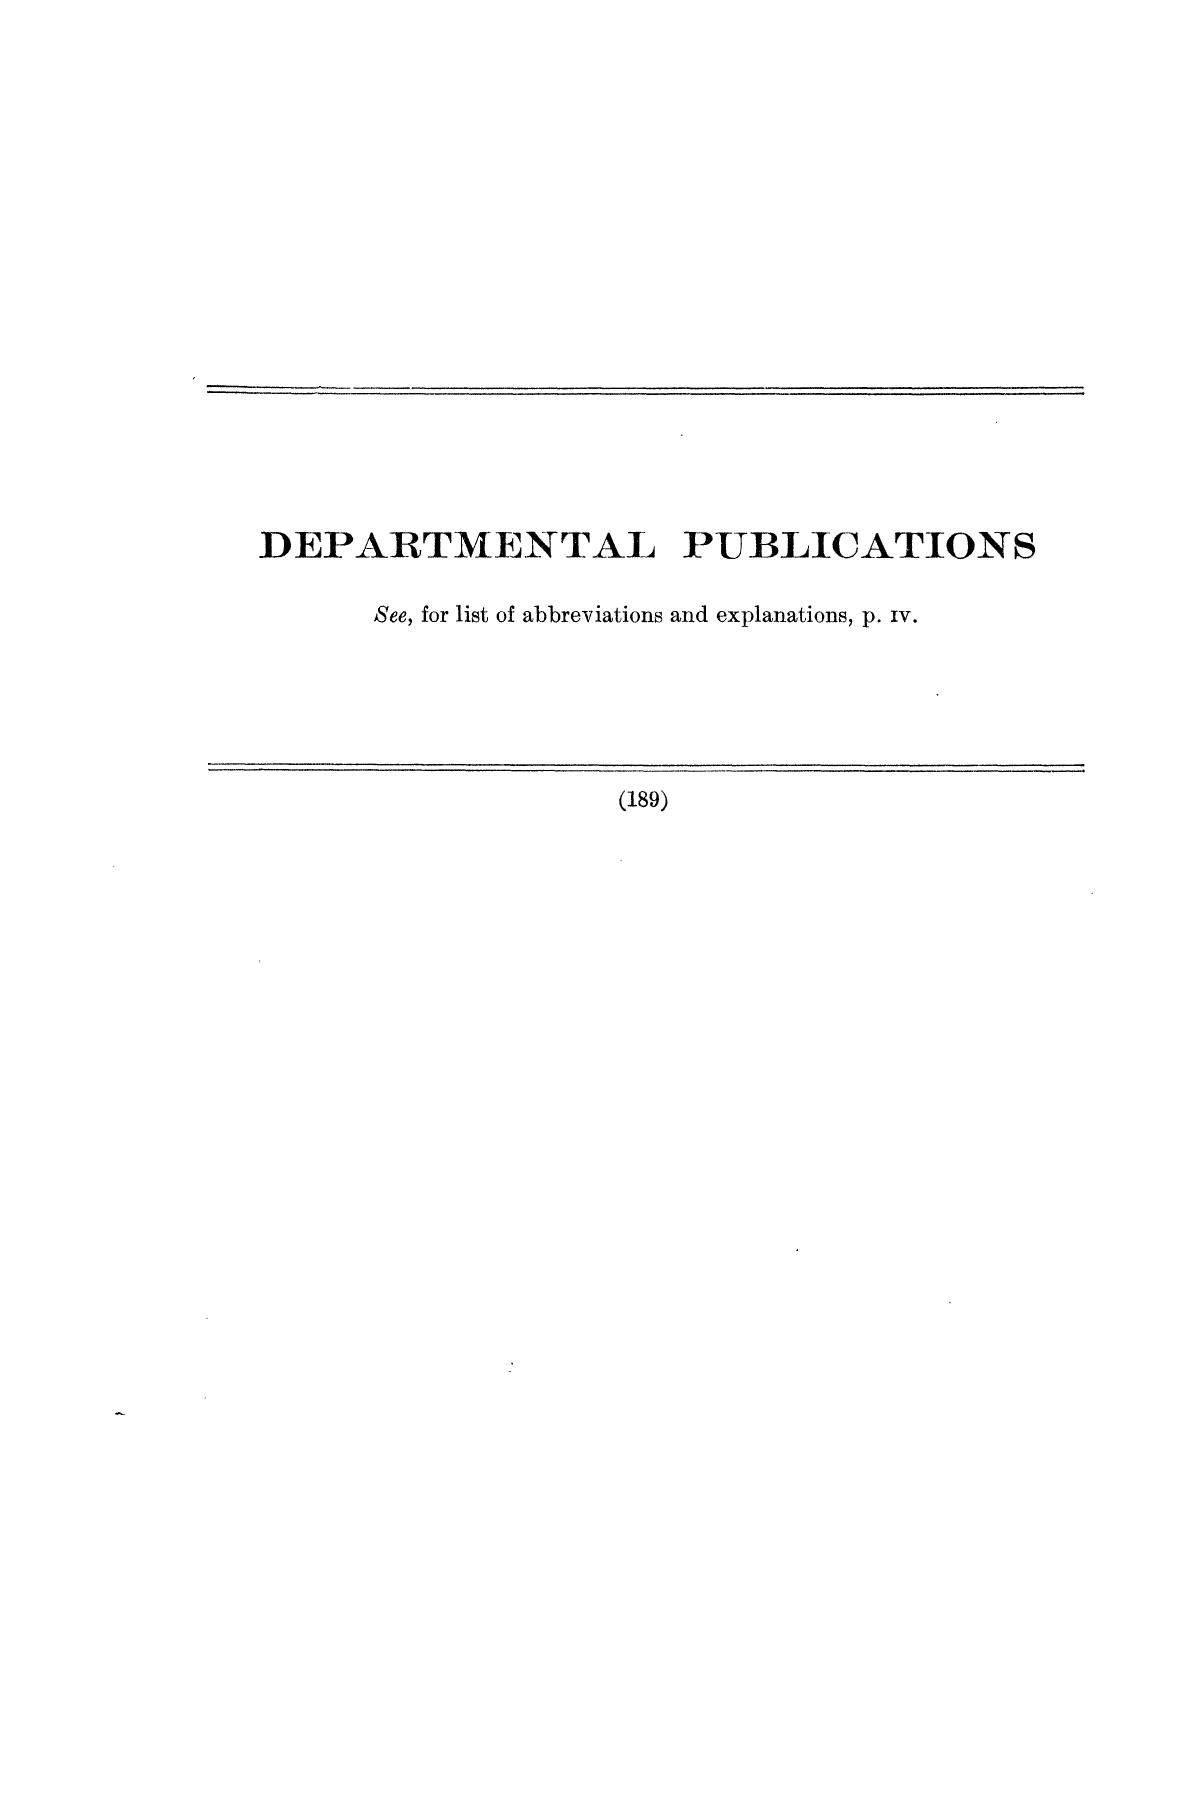 Checklist of United States Public Documents, 1789-1909, Third Edition Revised and Enlarged, Volume 1, Lists of Congressional and Departmental Publications                                                                                                      189